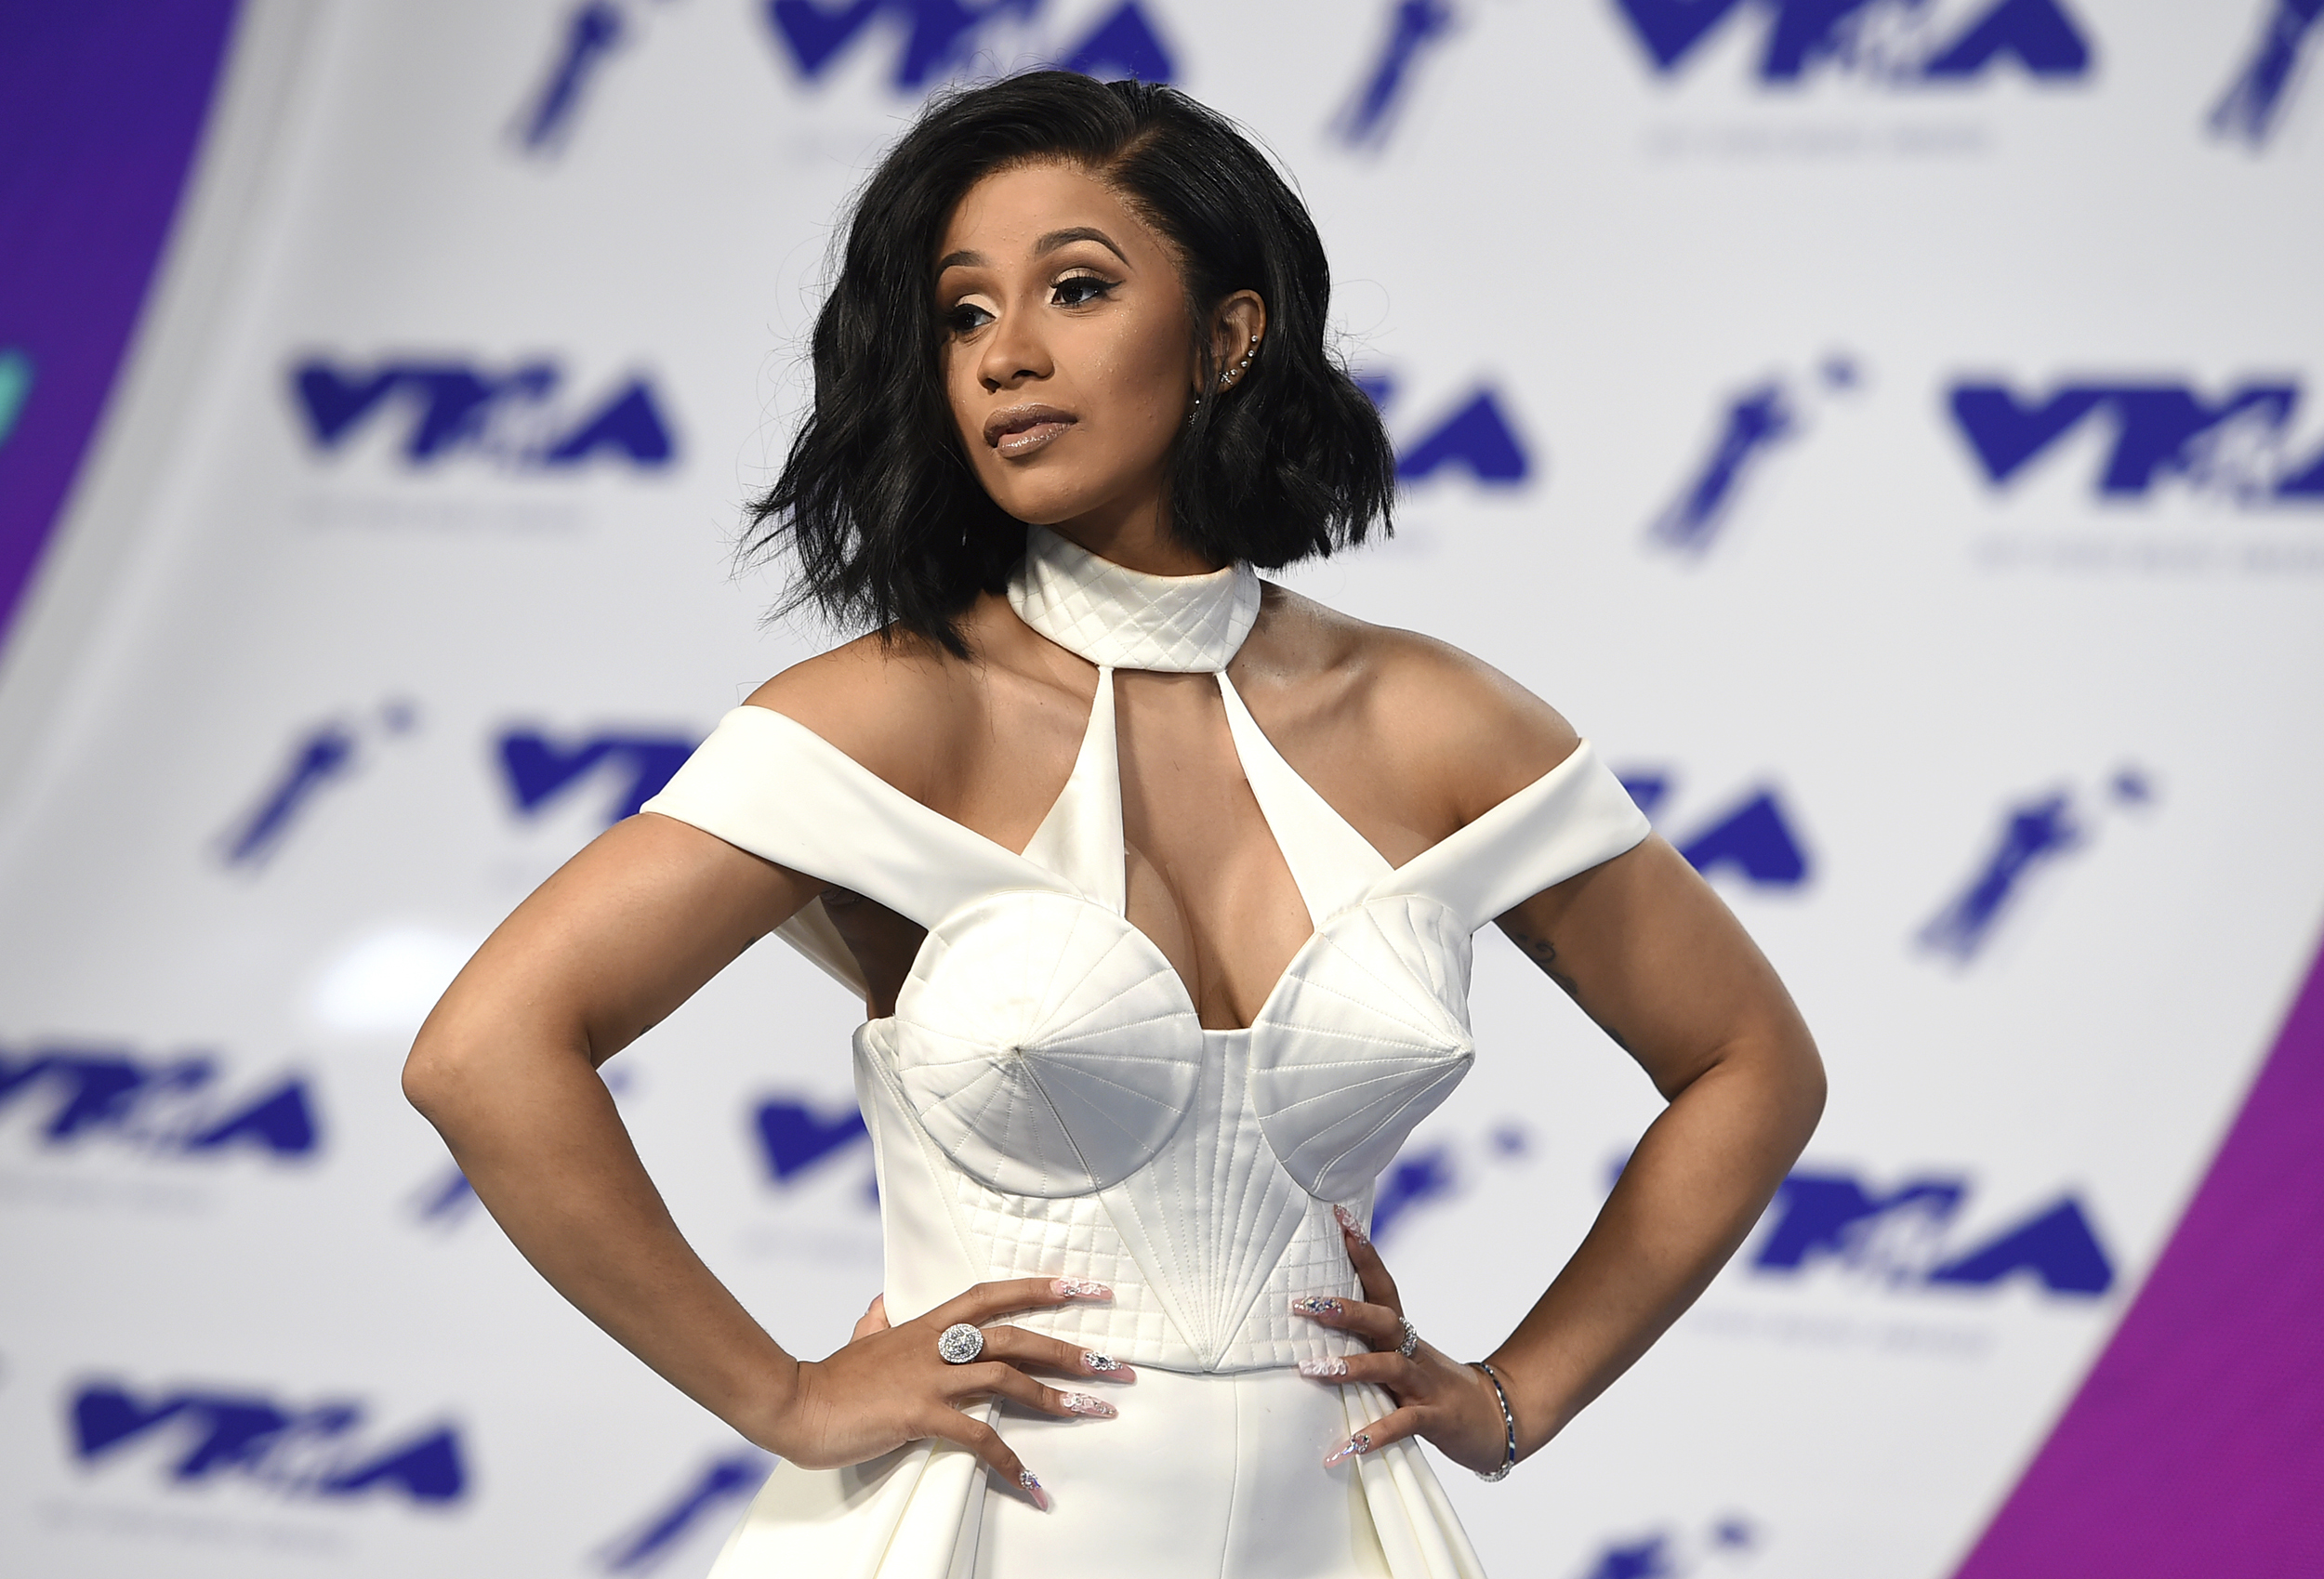 Cardi B defends Zaya Wade against anti-trans attacks, urges people to 'try  to understand'